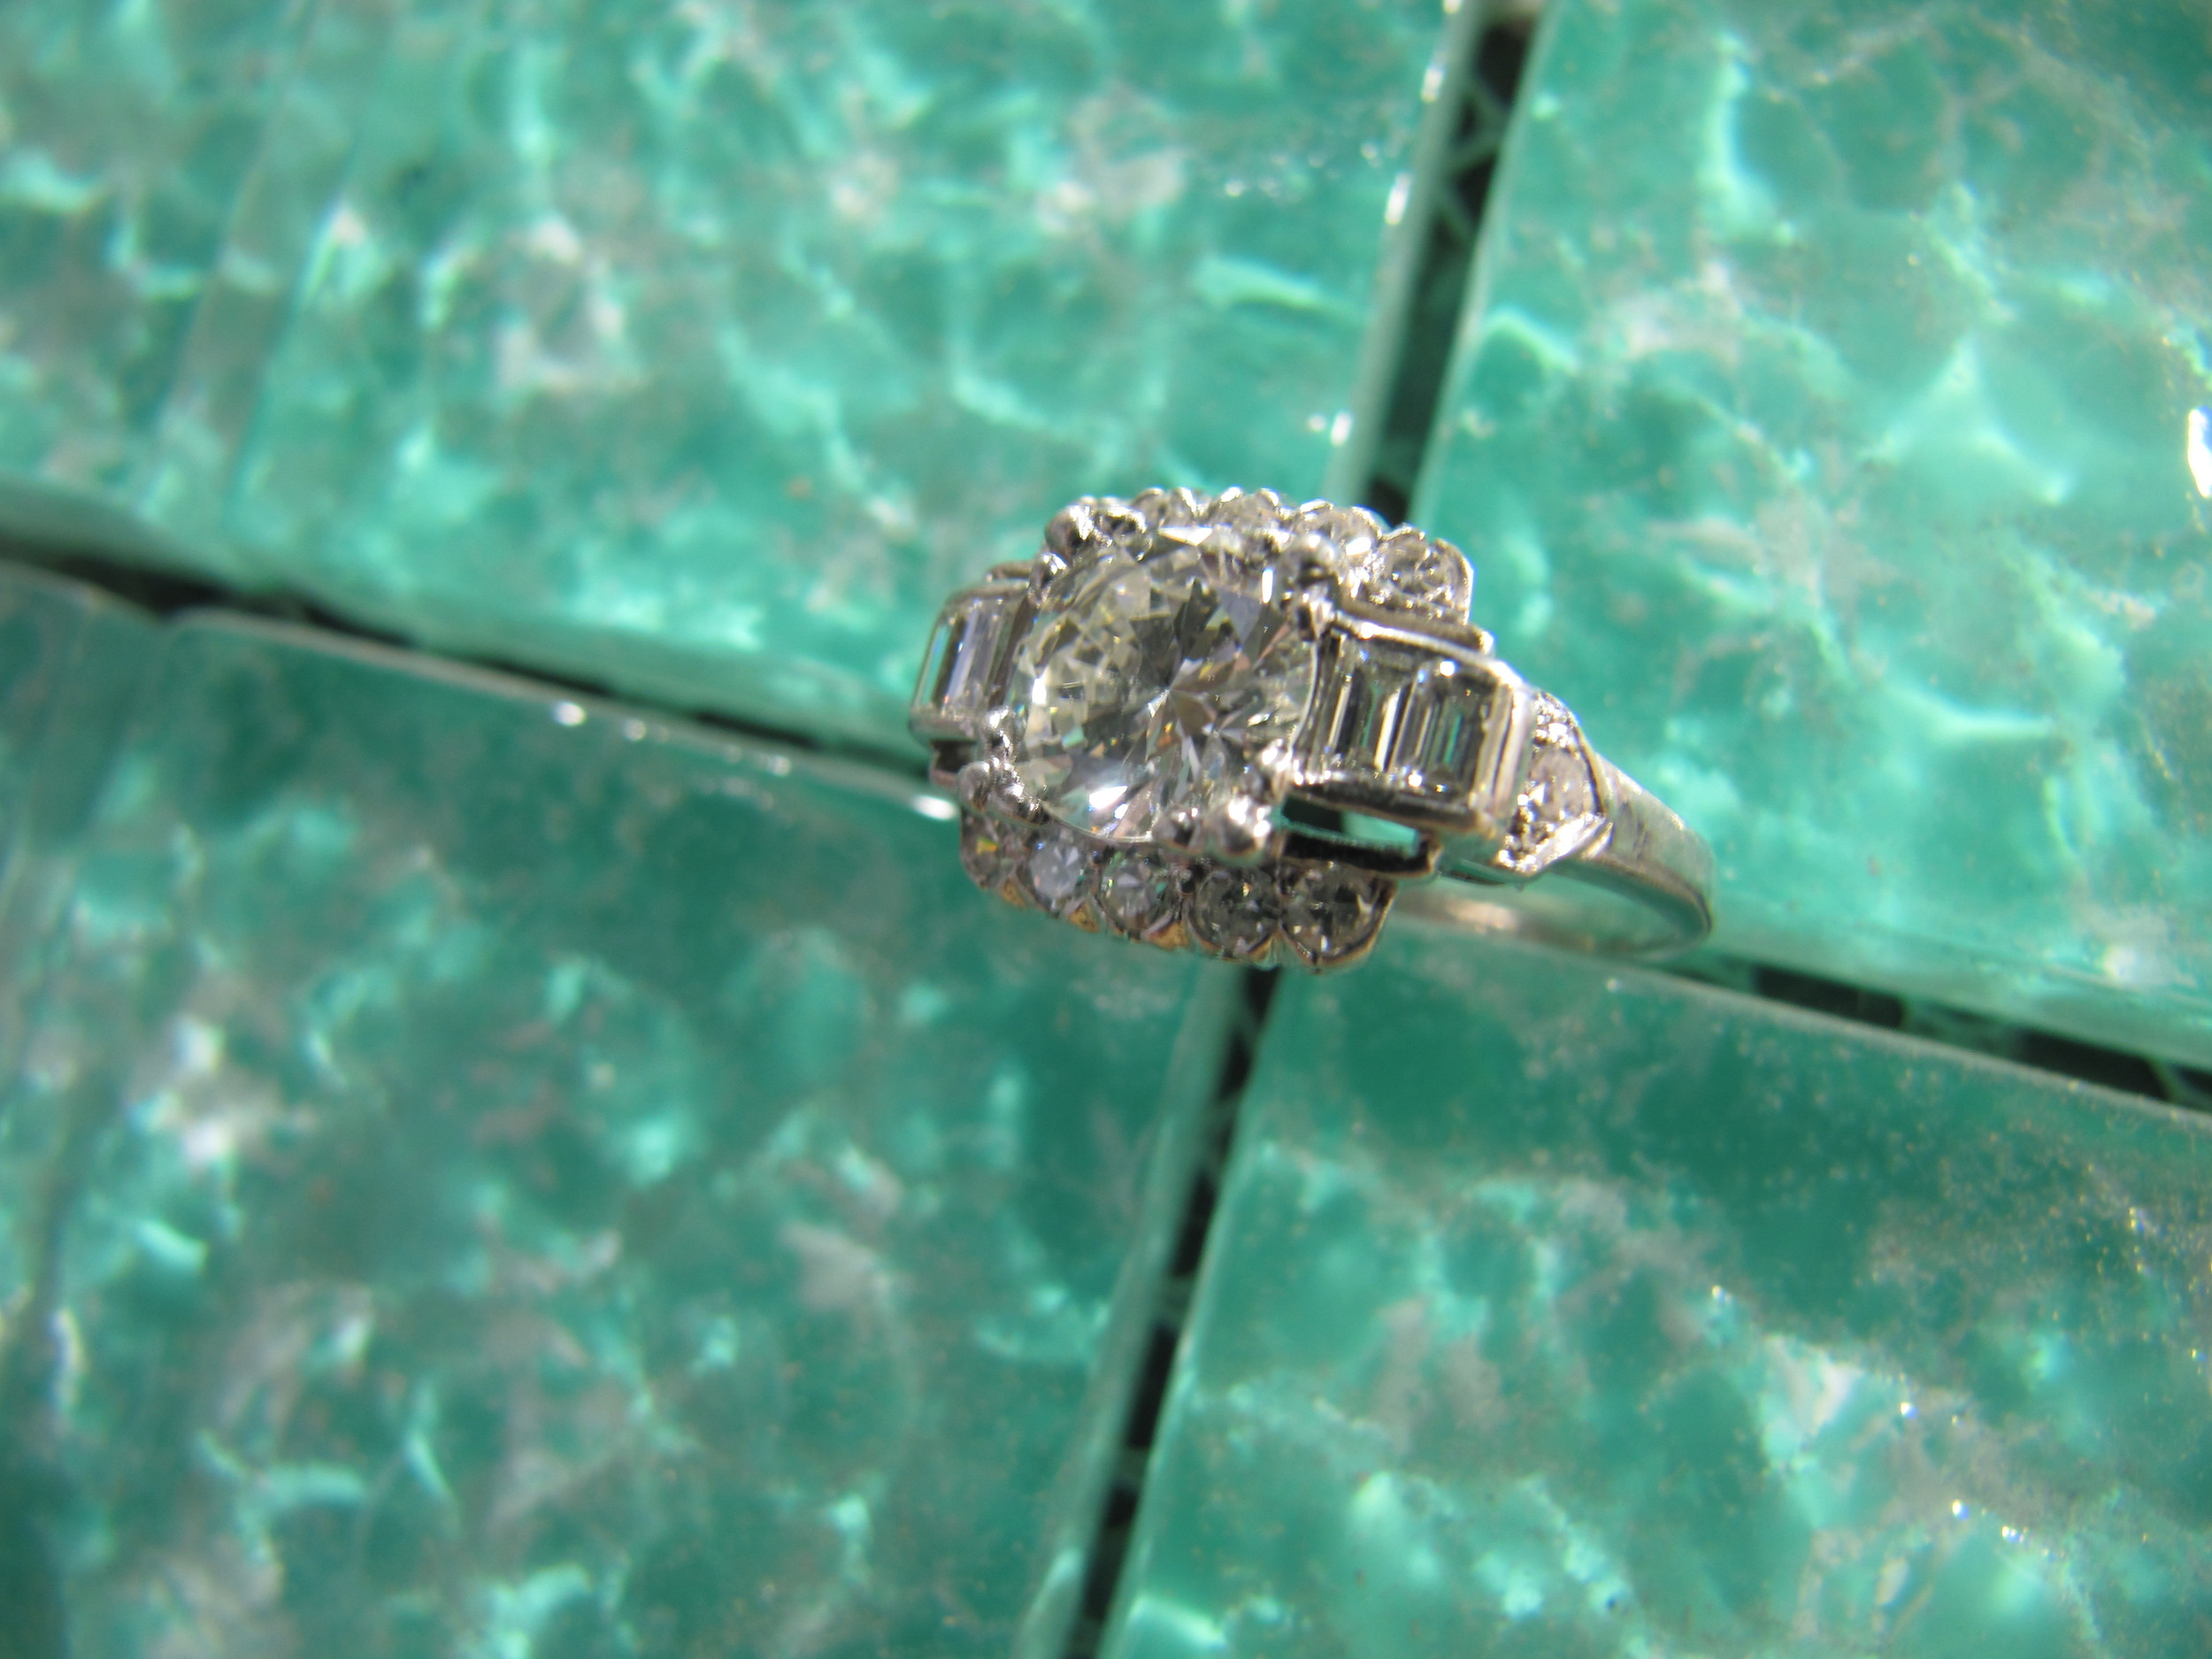 SOLD - 1.15 carat center diamond ring set in platinum